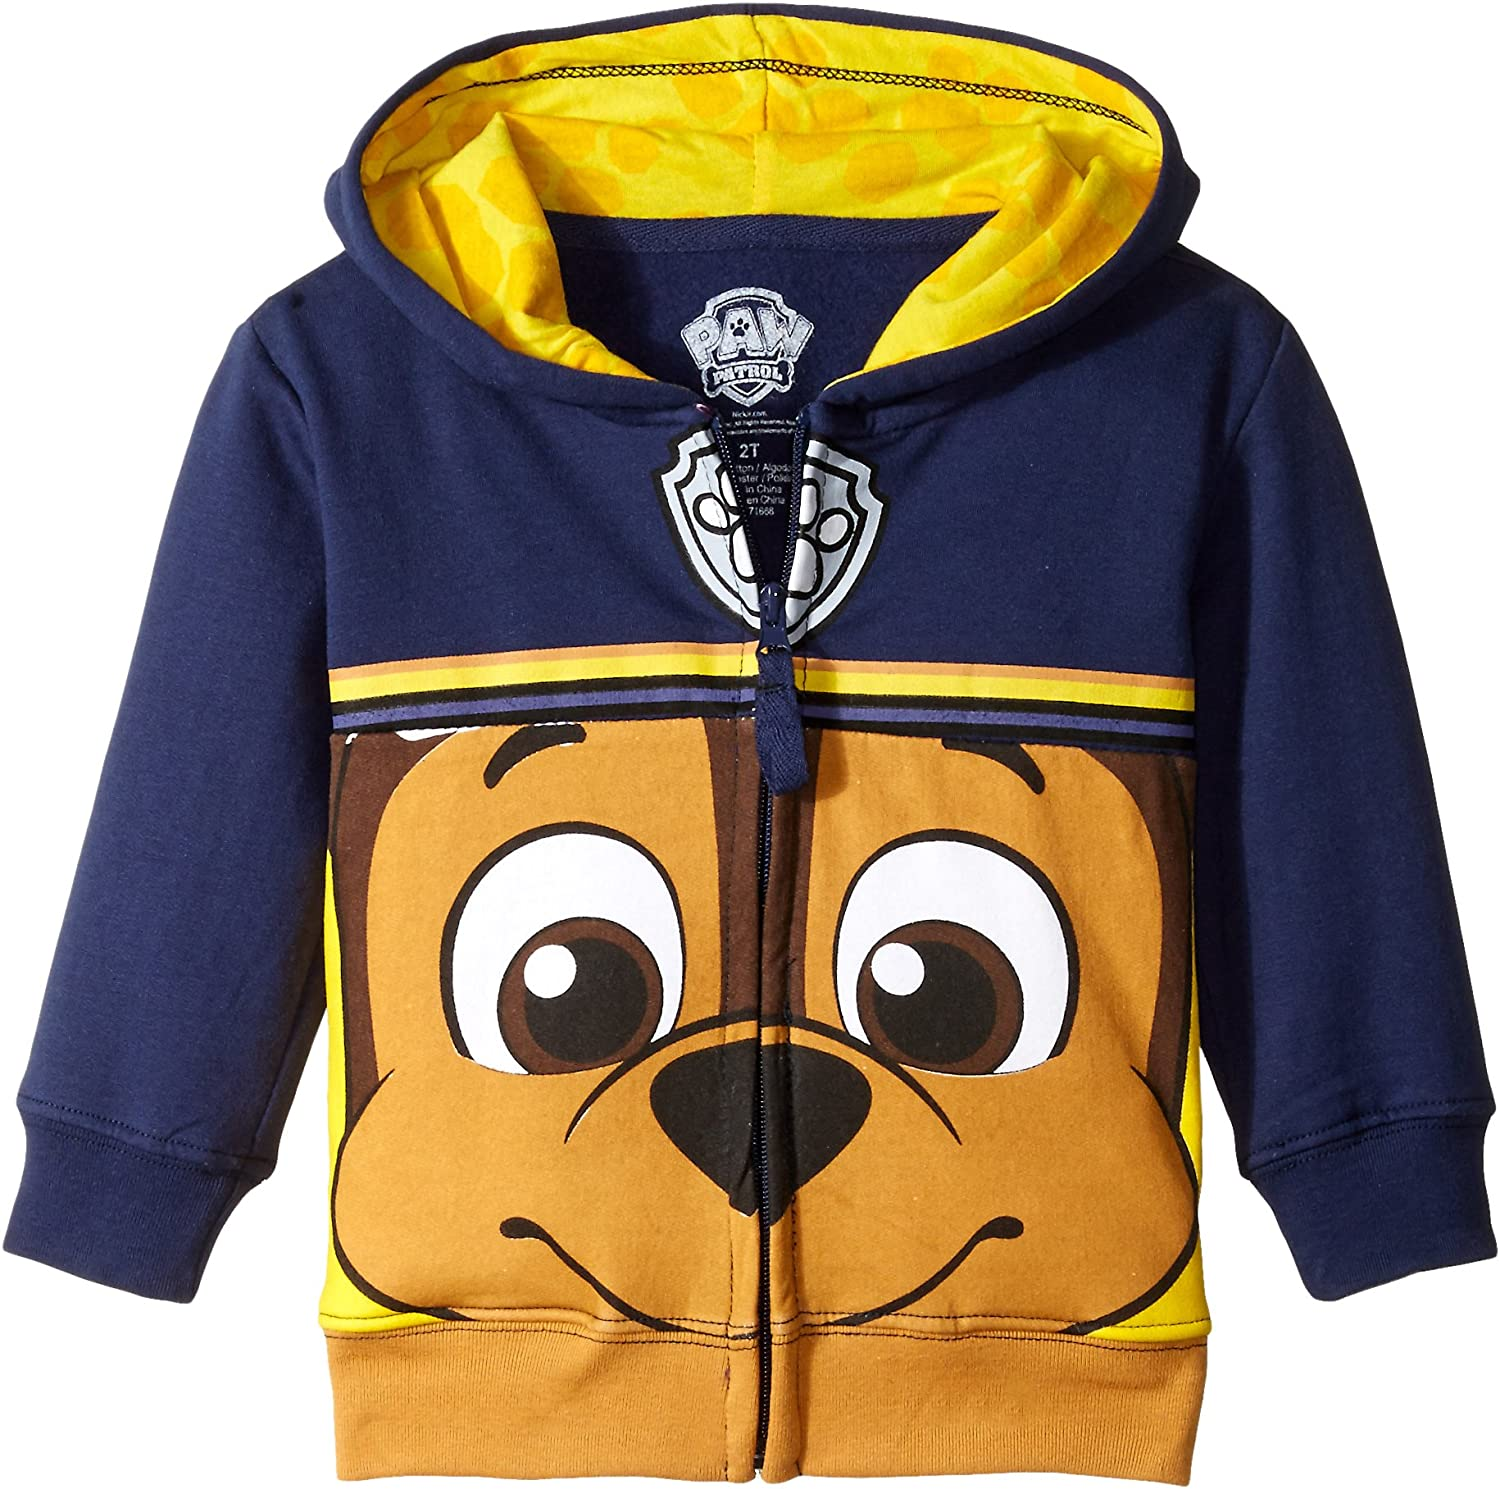 Paw Patrol Boys' Toddler Character Big Face Zip-up Hoodies: Clothing